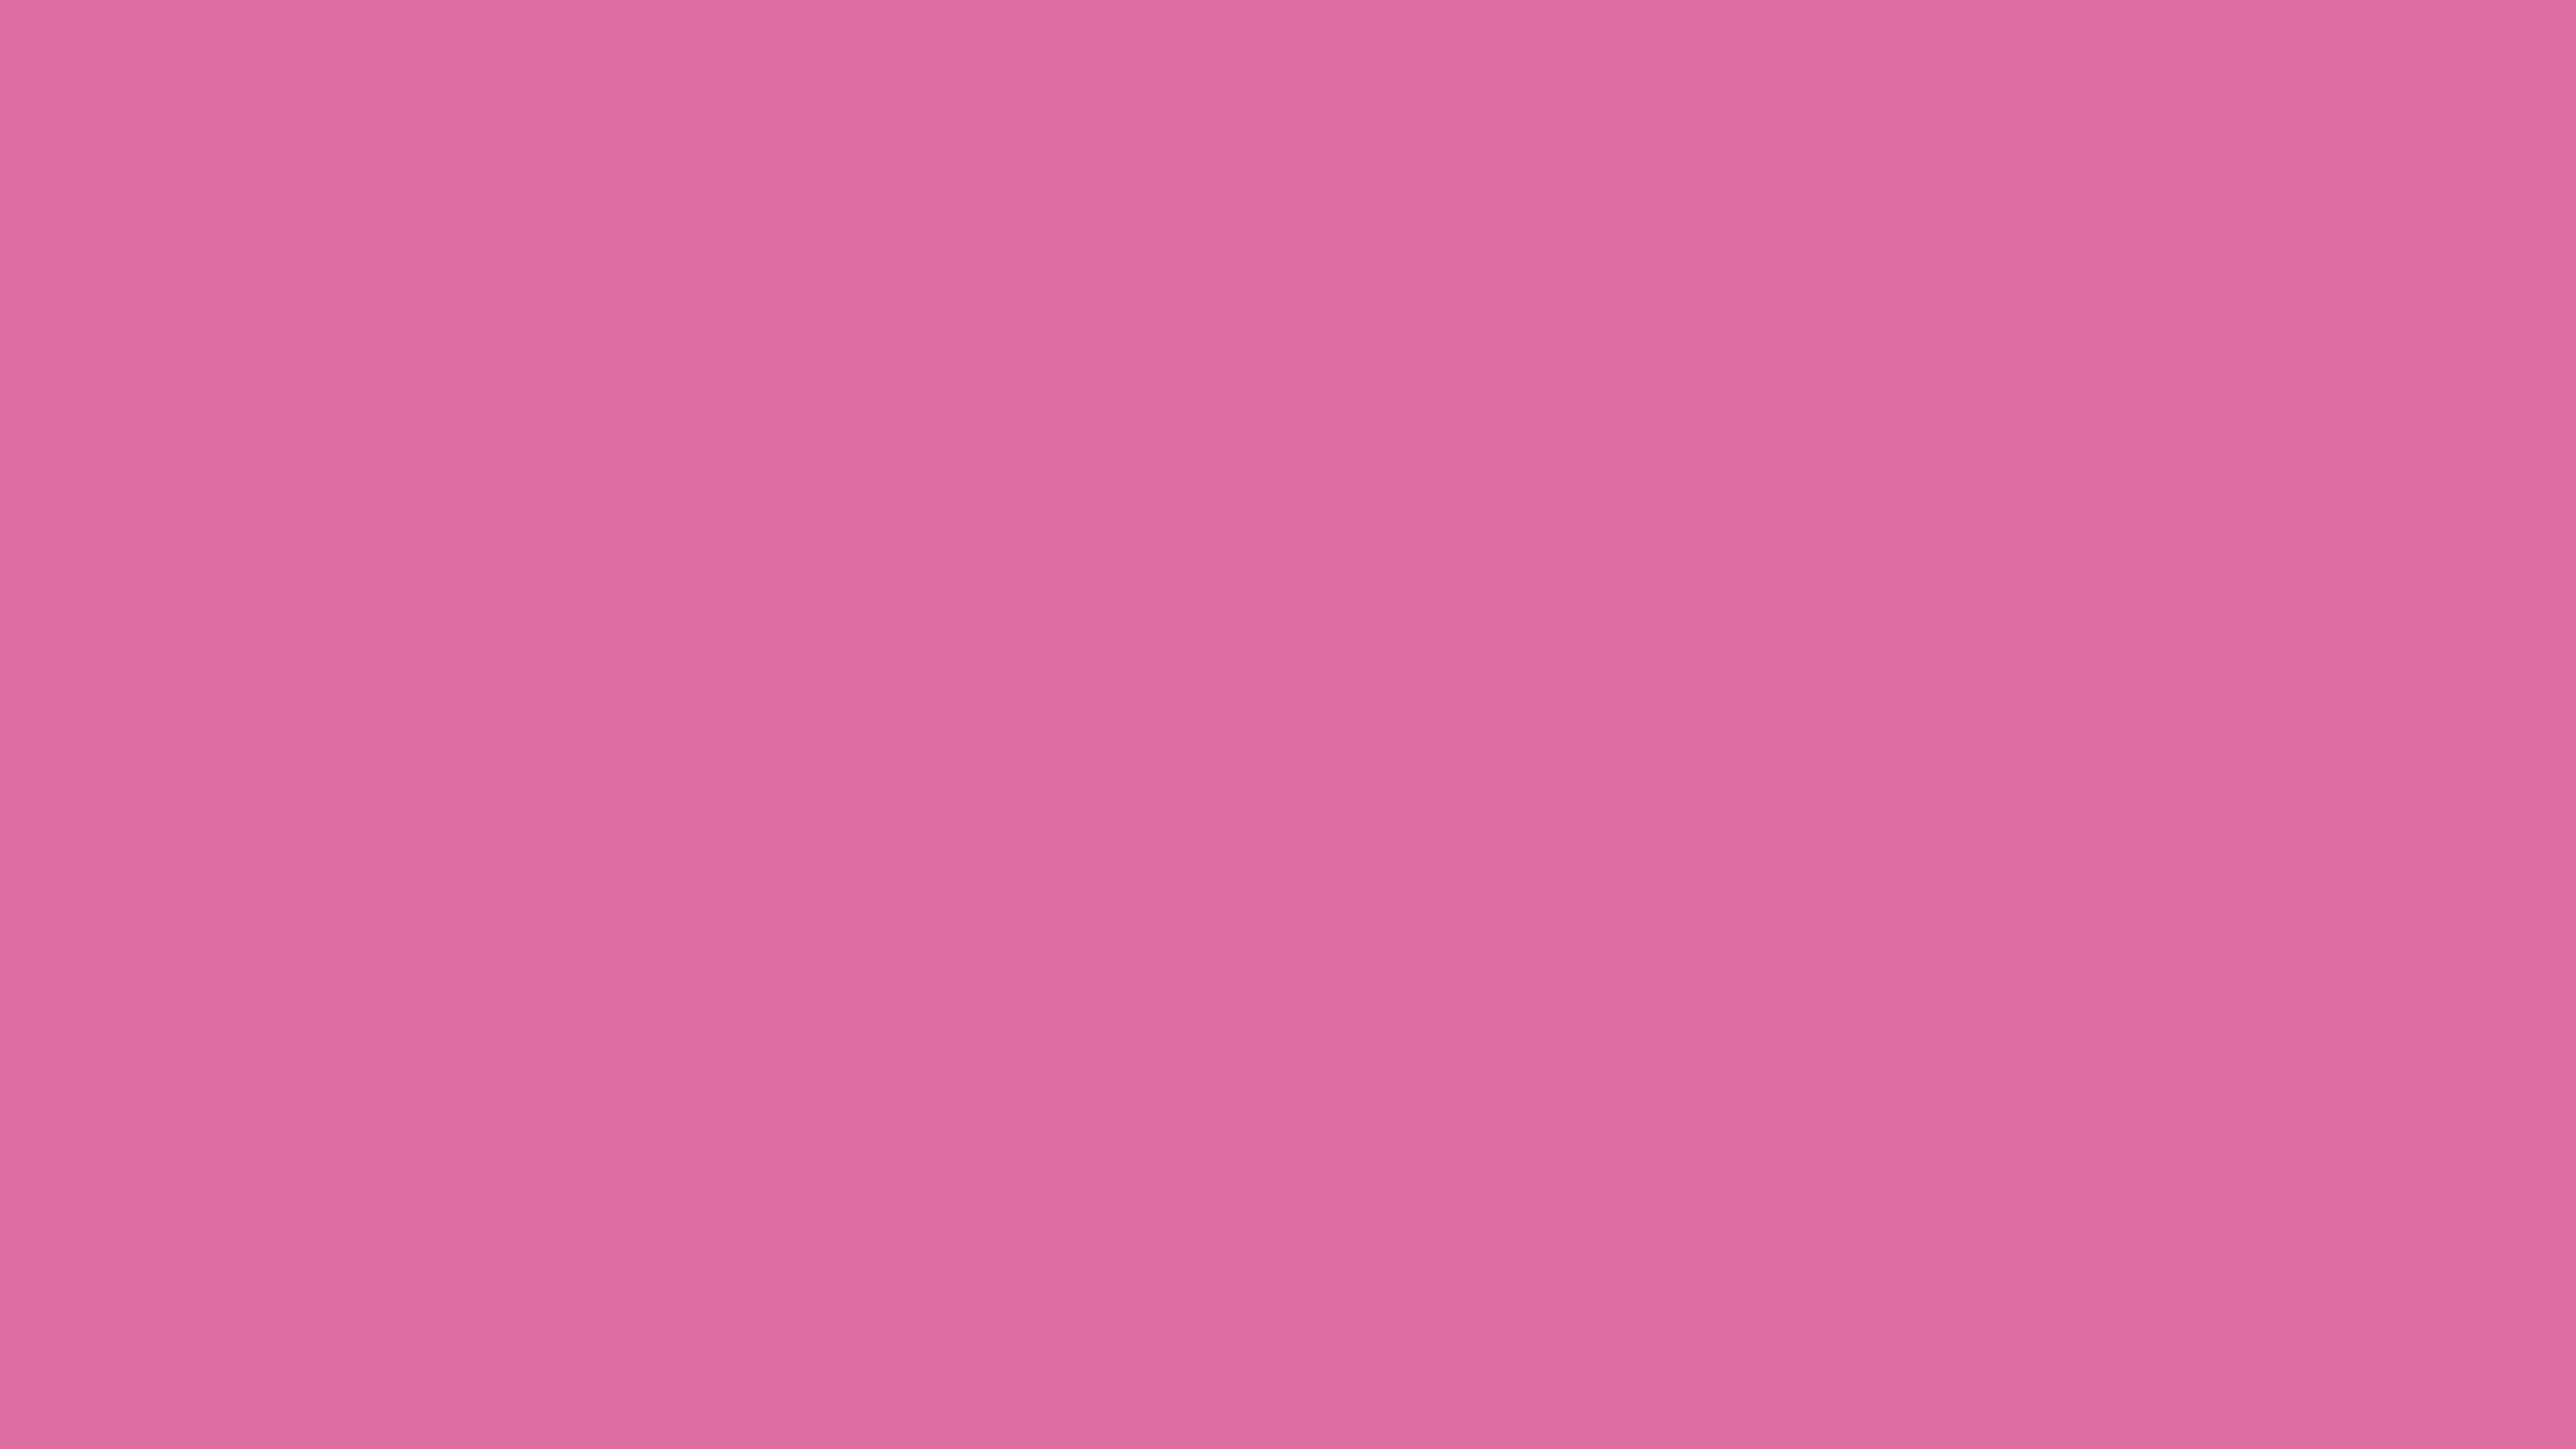 4096x2304 Thulian Pink Solid Color Background